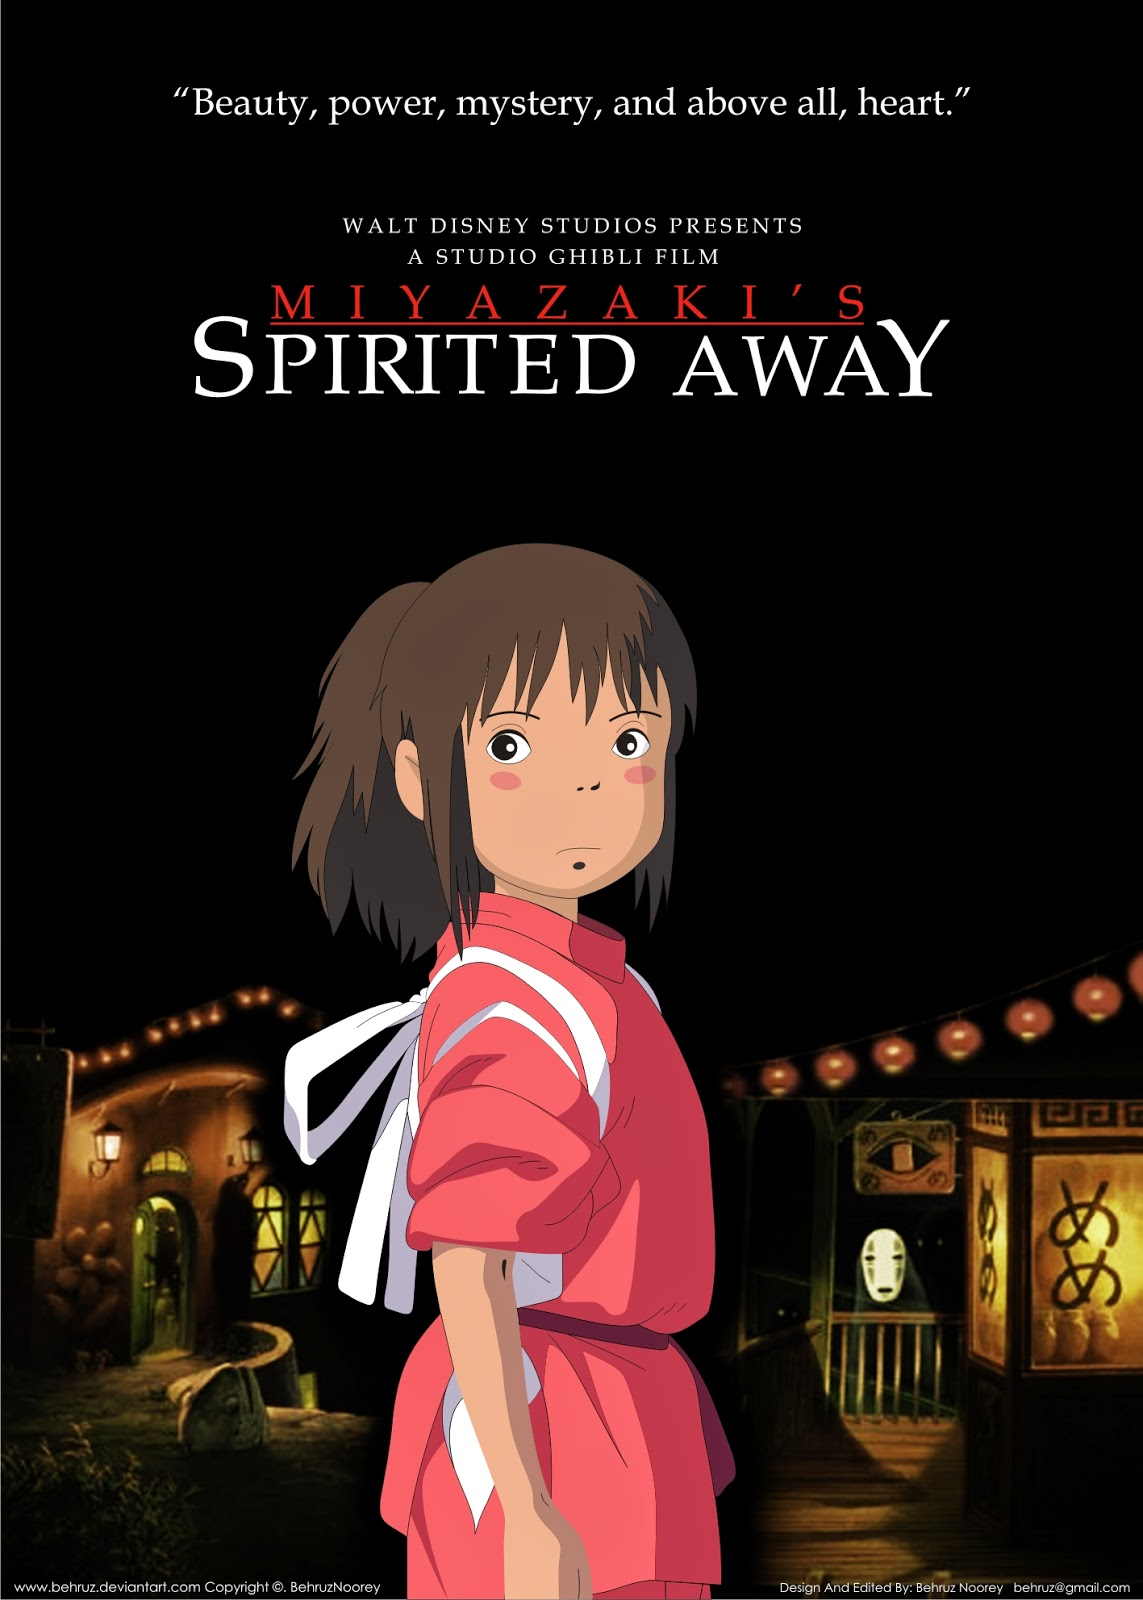 foreign film submission spirited away essay